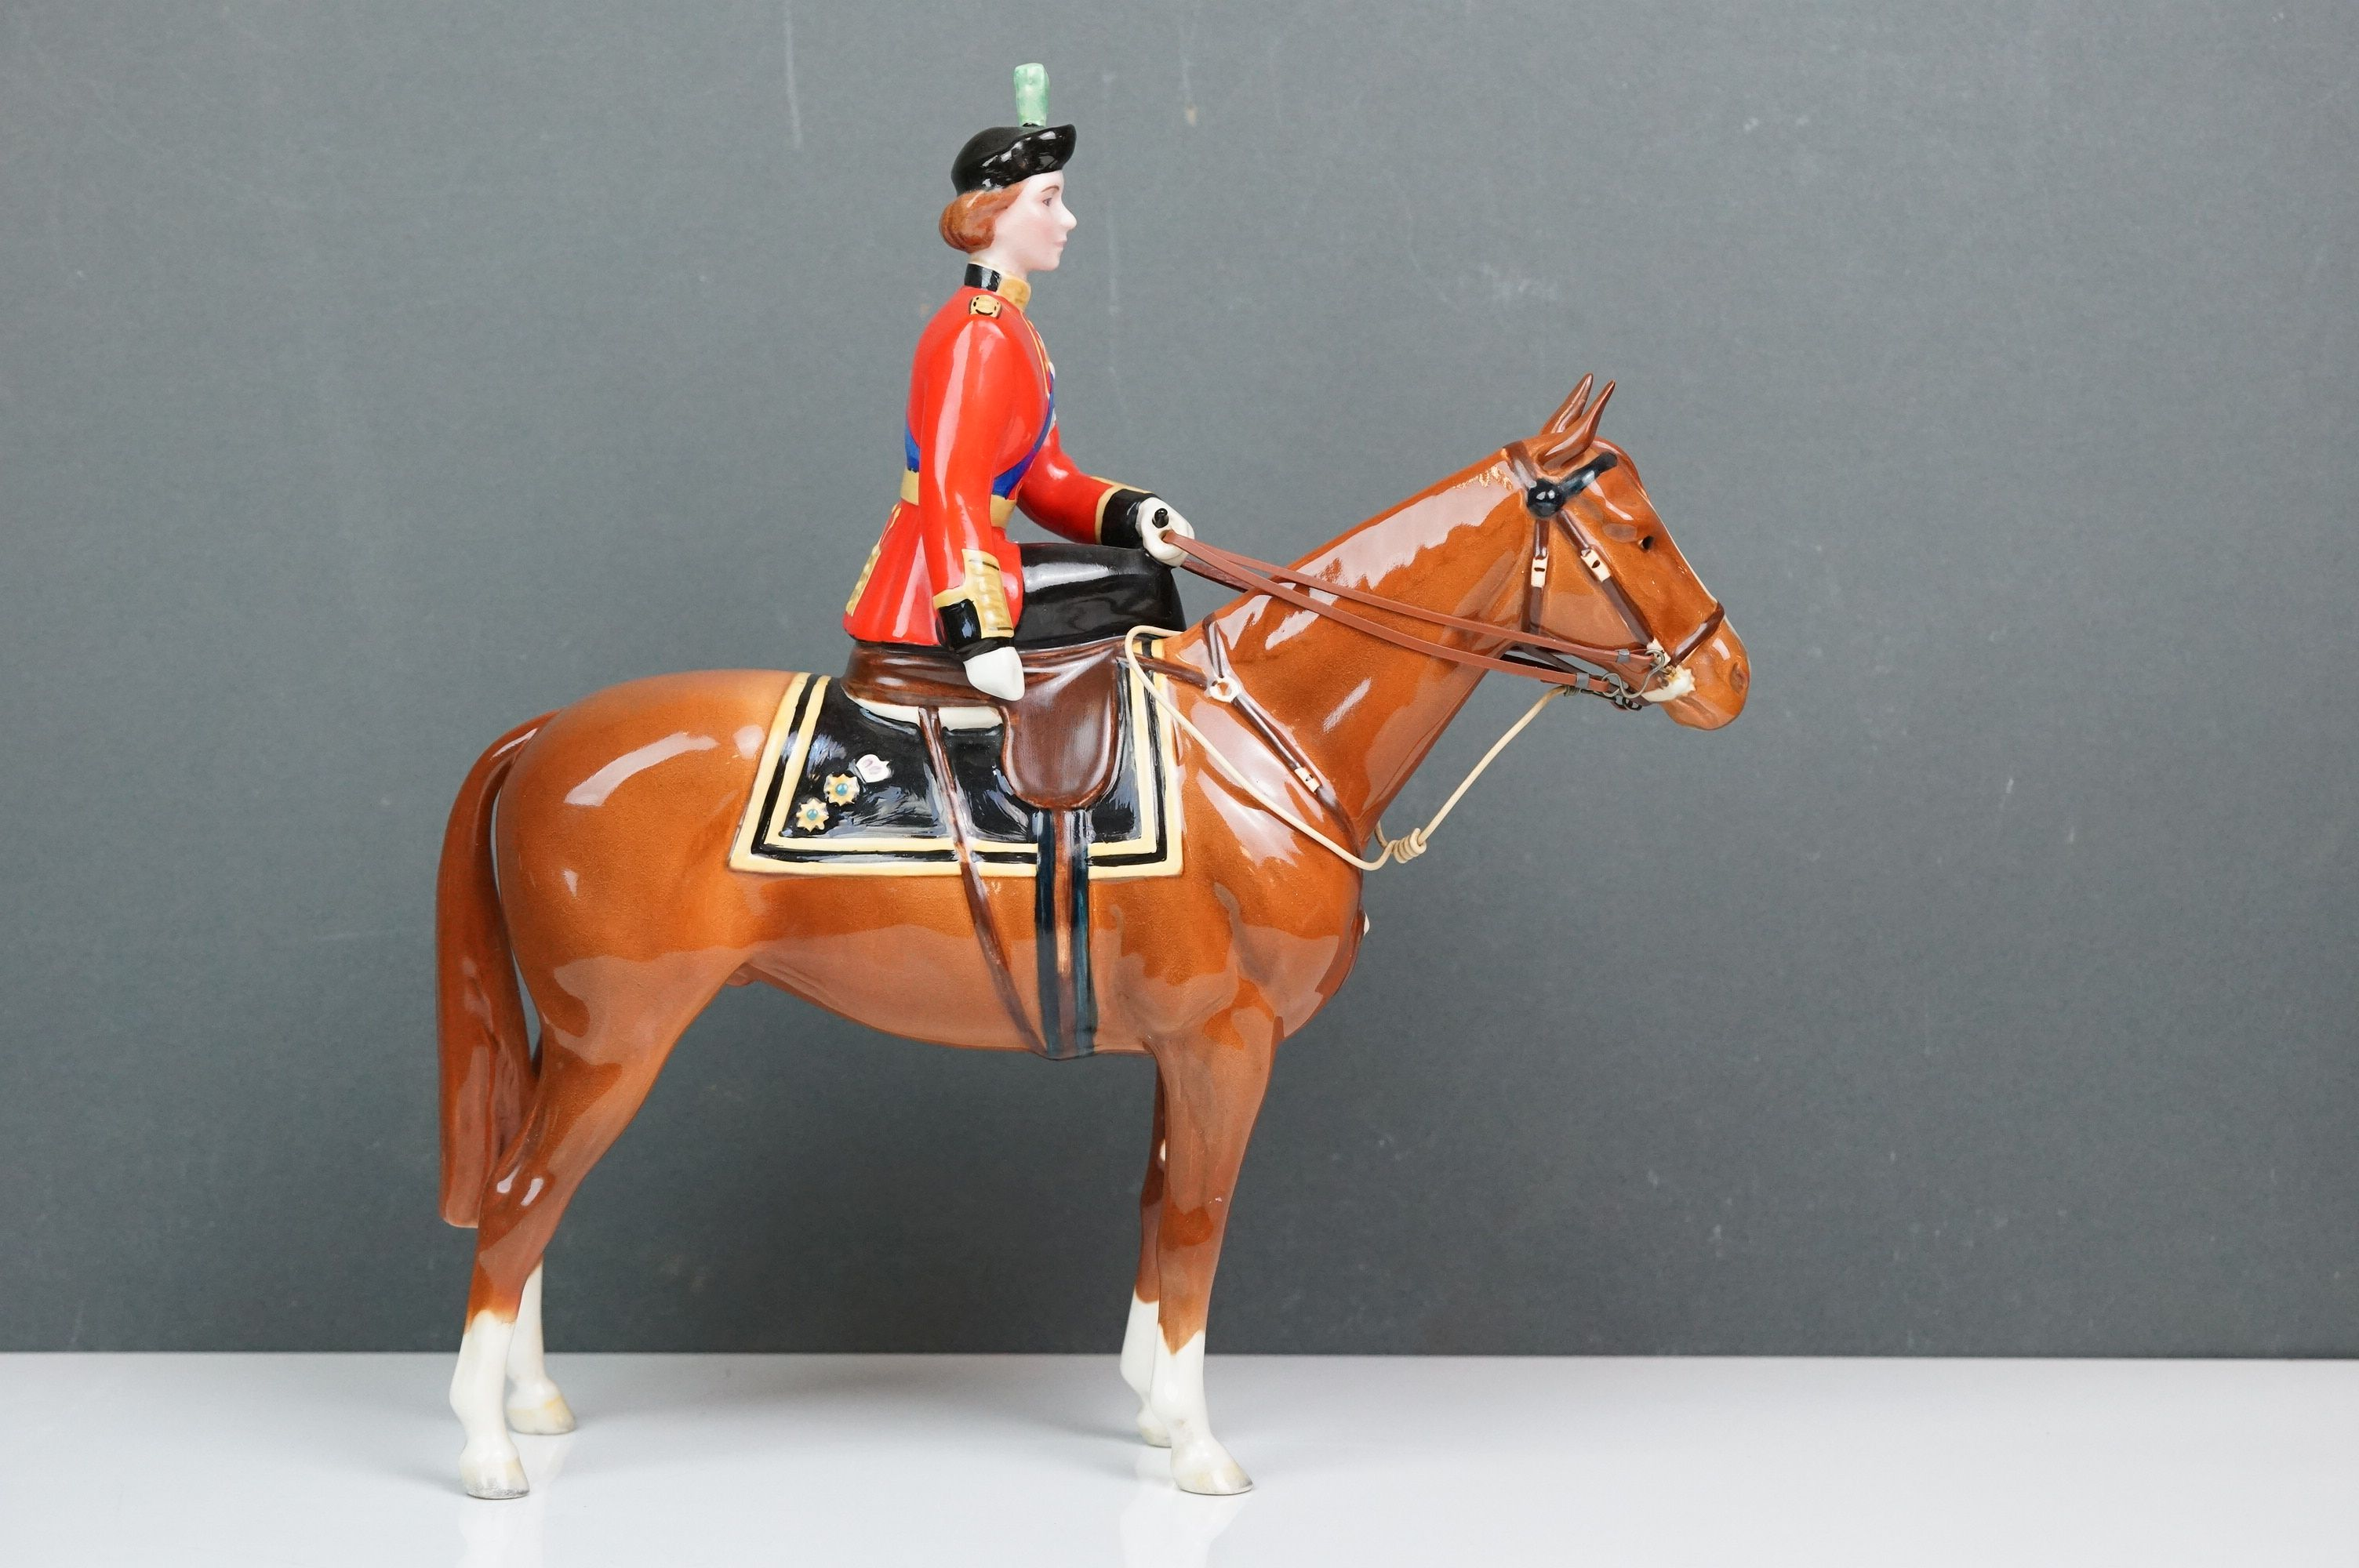 Beswick HM Queen Elizabeth II mounted on Imperial, Trooping the Colour 1957, model no. 1546 H26.5cm - Image 3 of 8